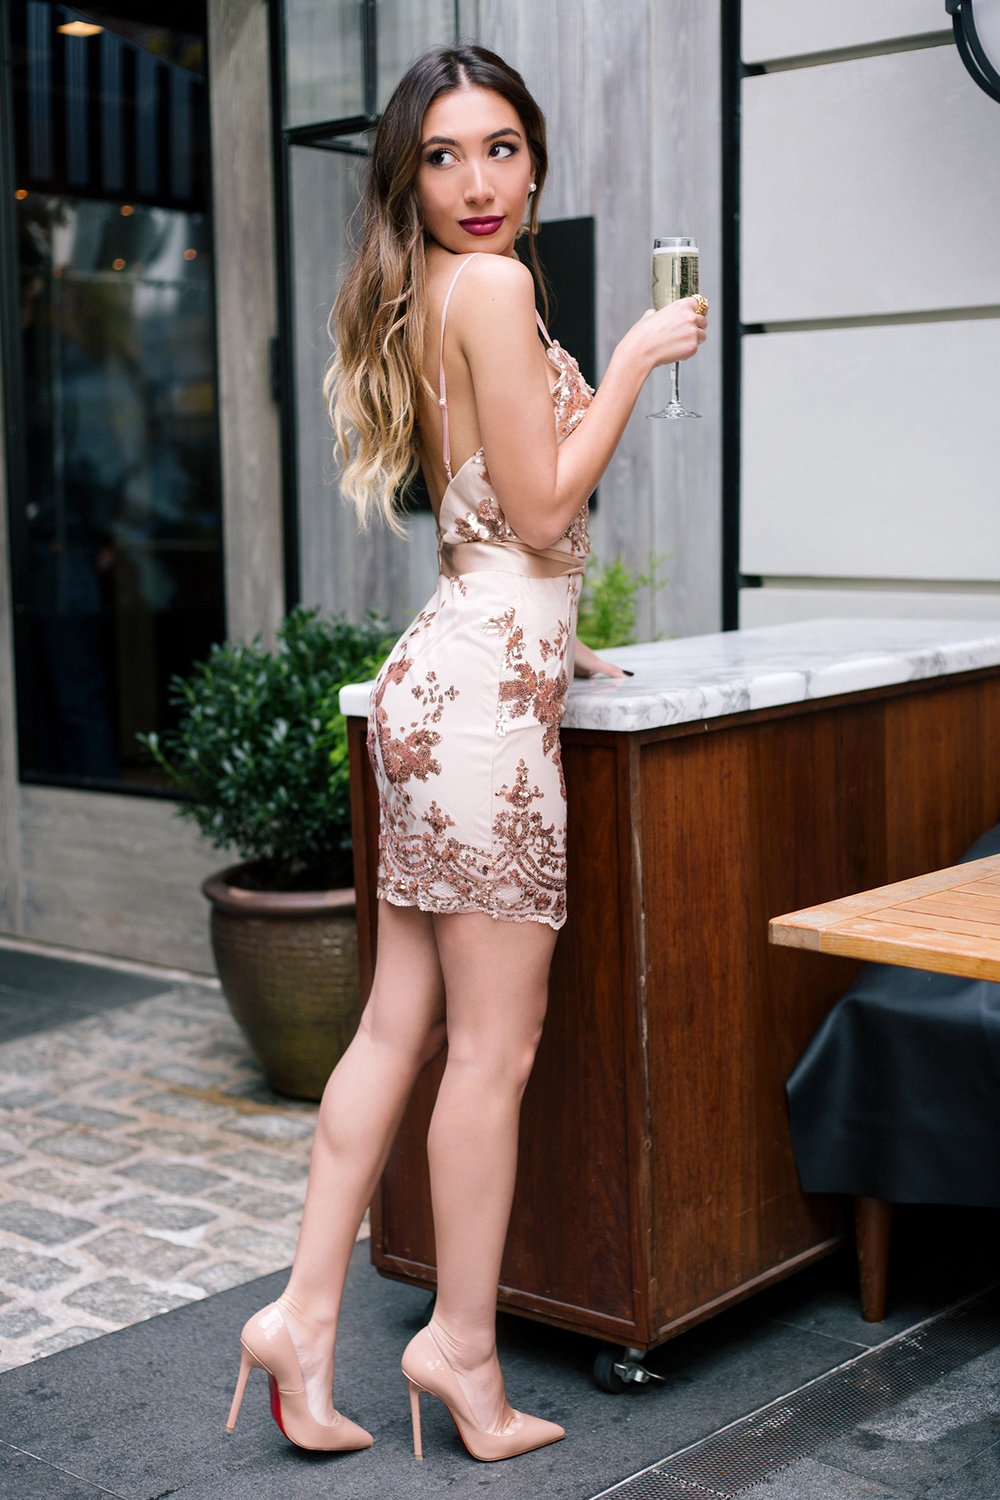 Sexy nude party dress with sequins as seen on Ulia Ali from Pastiche Today blog